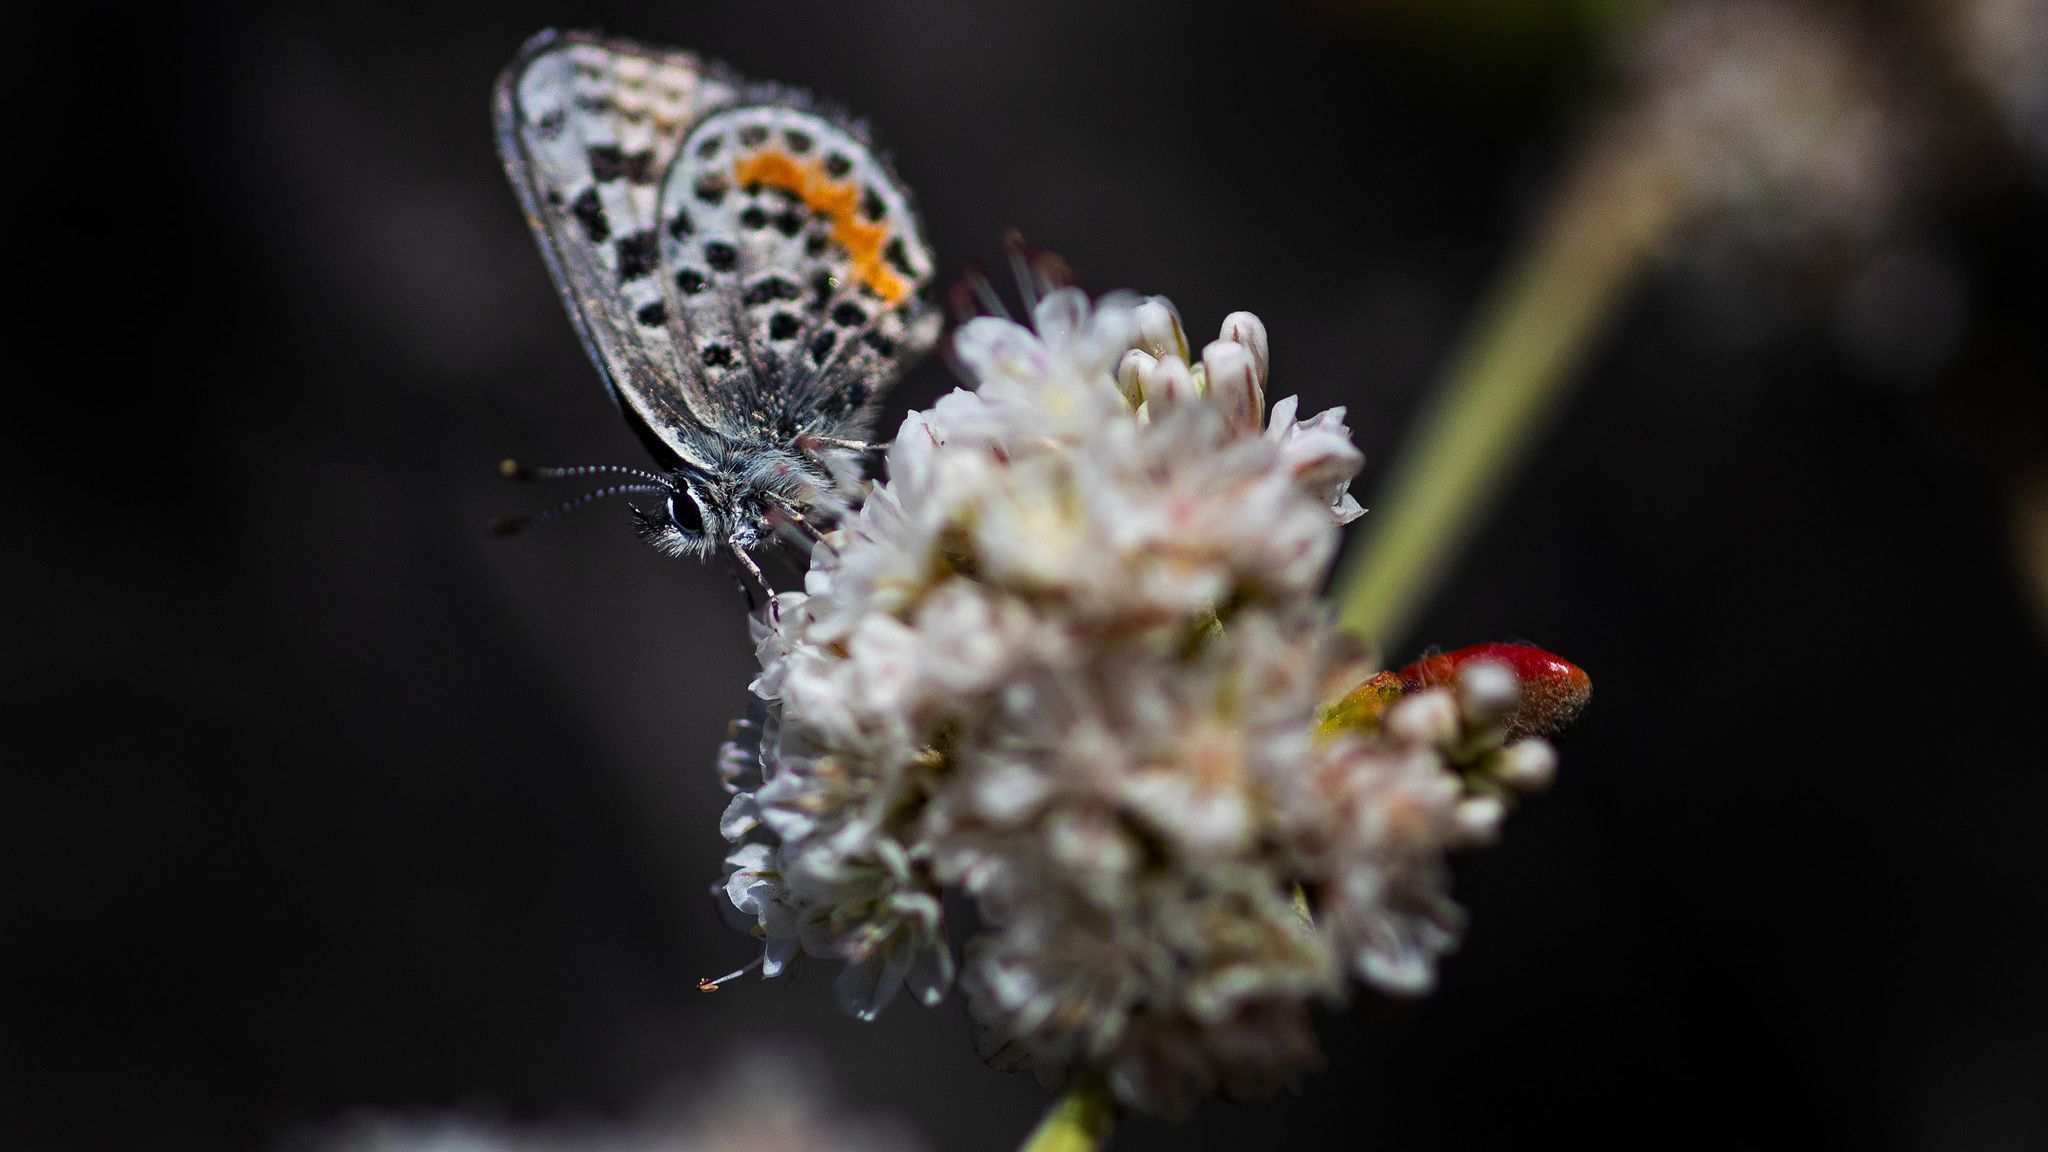 Hating on ice plant while tracking the flirty El Segundo blue butterfly | Los Angeles Times